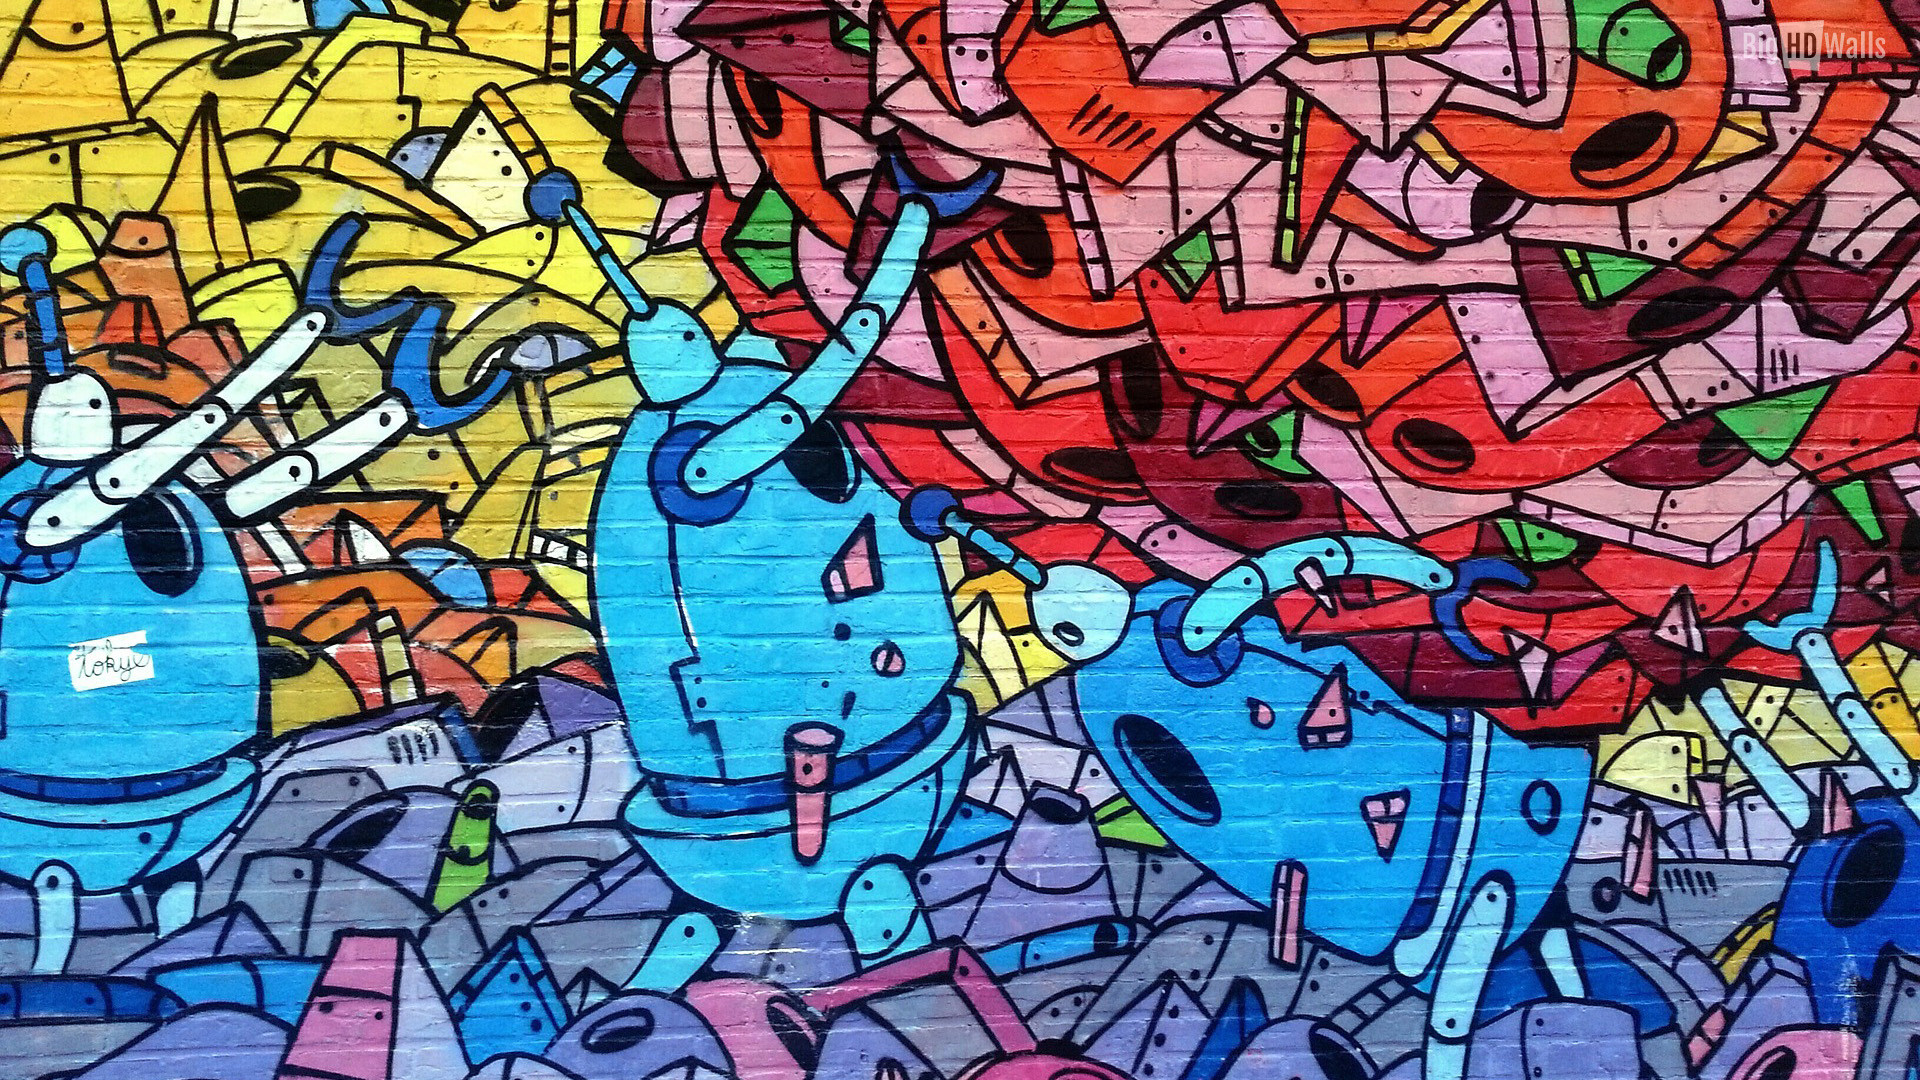 Hd Graffiti Desktop Wallpapers 71 Images